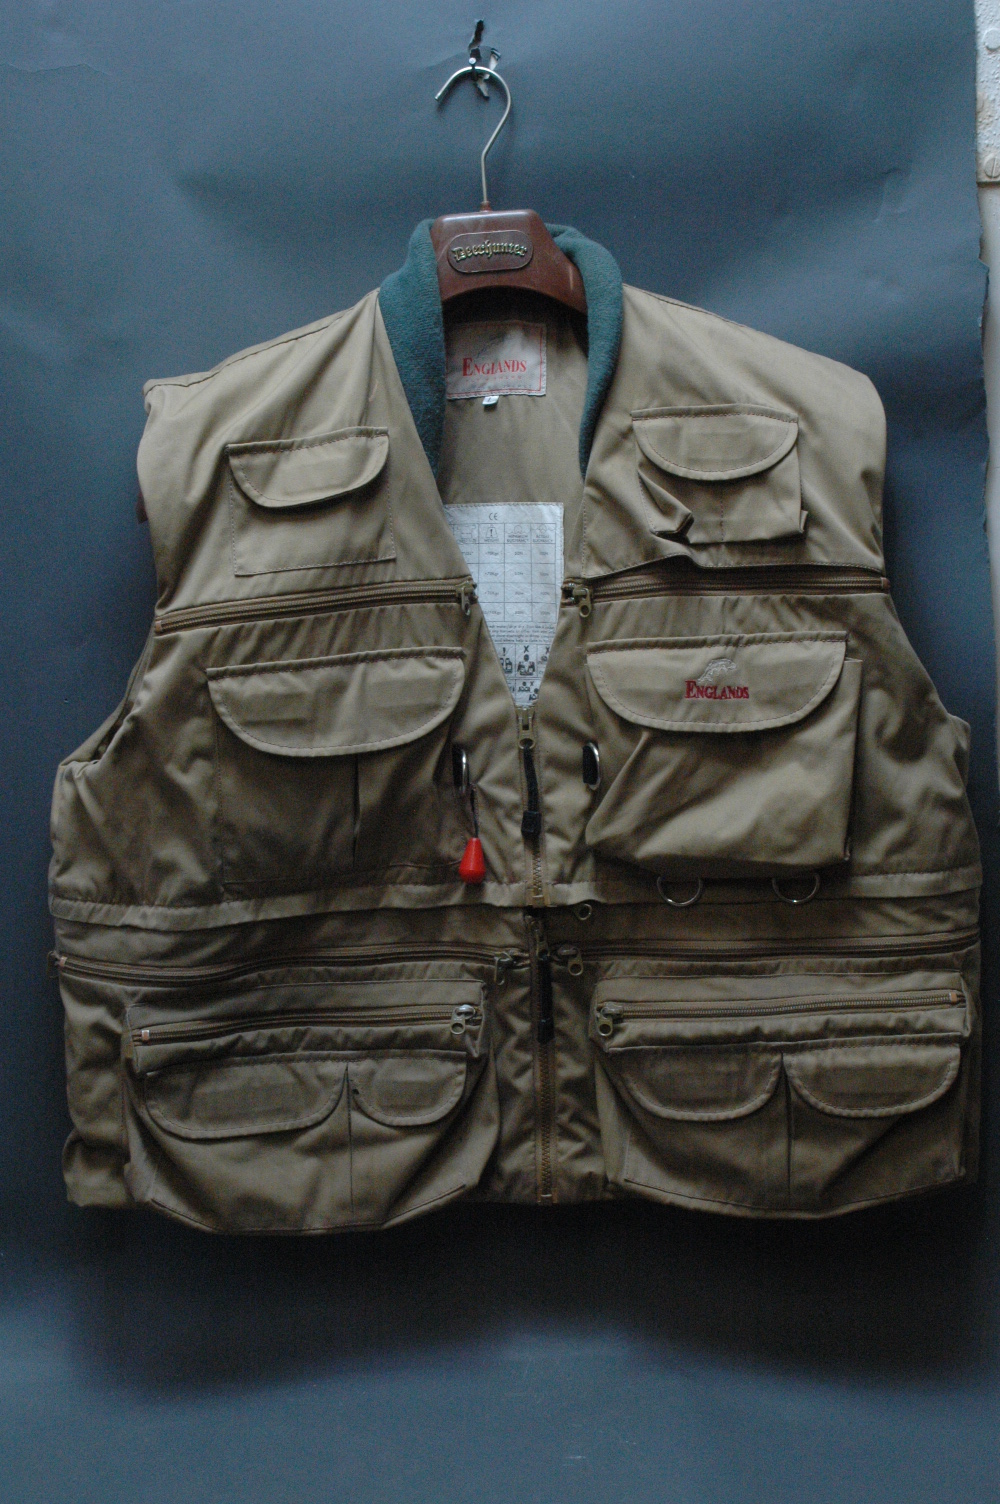 England 39 s fly fishing waistcoat combined life jacket and a for Fishing life jacket